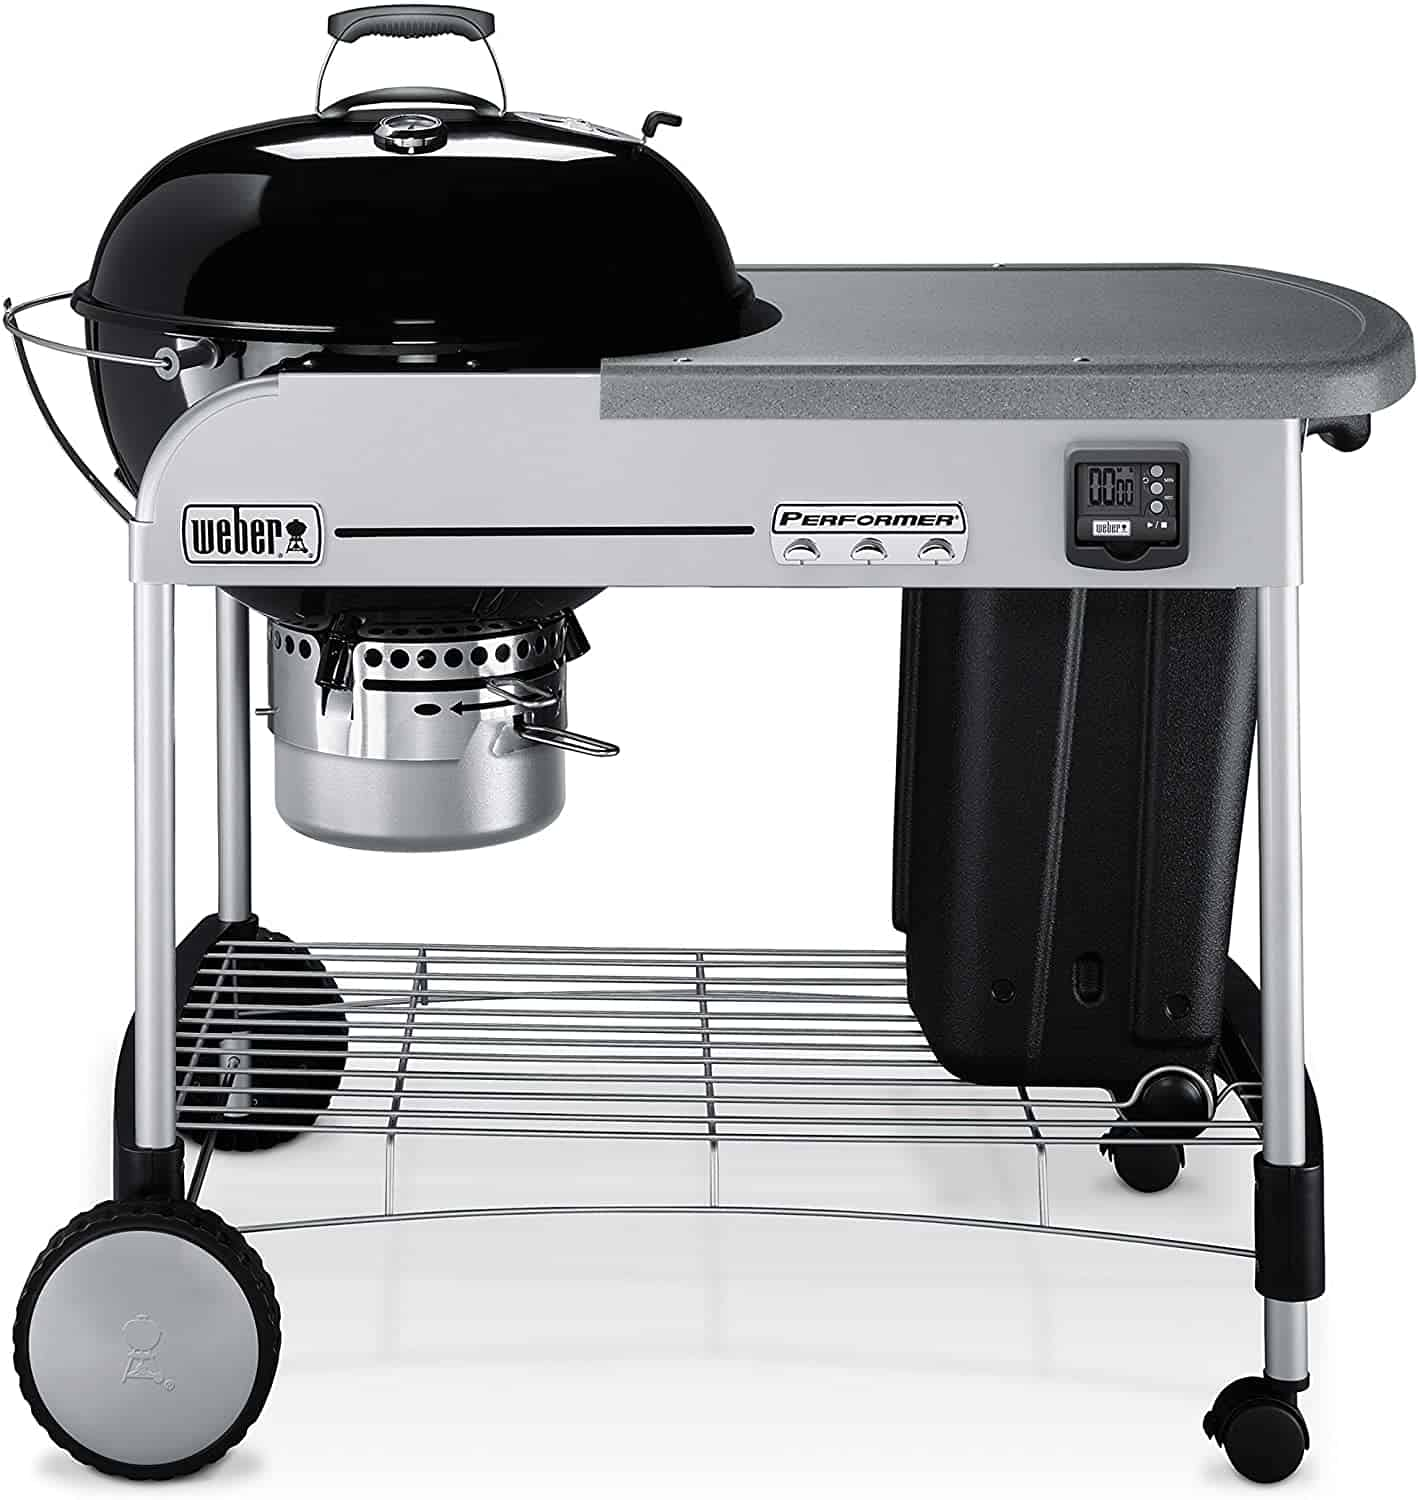 Weber Charcoal Premium Grill